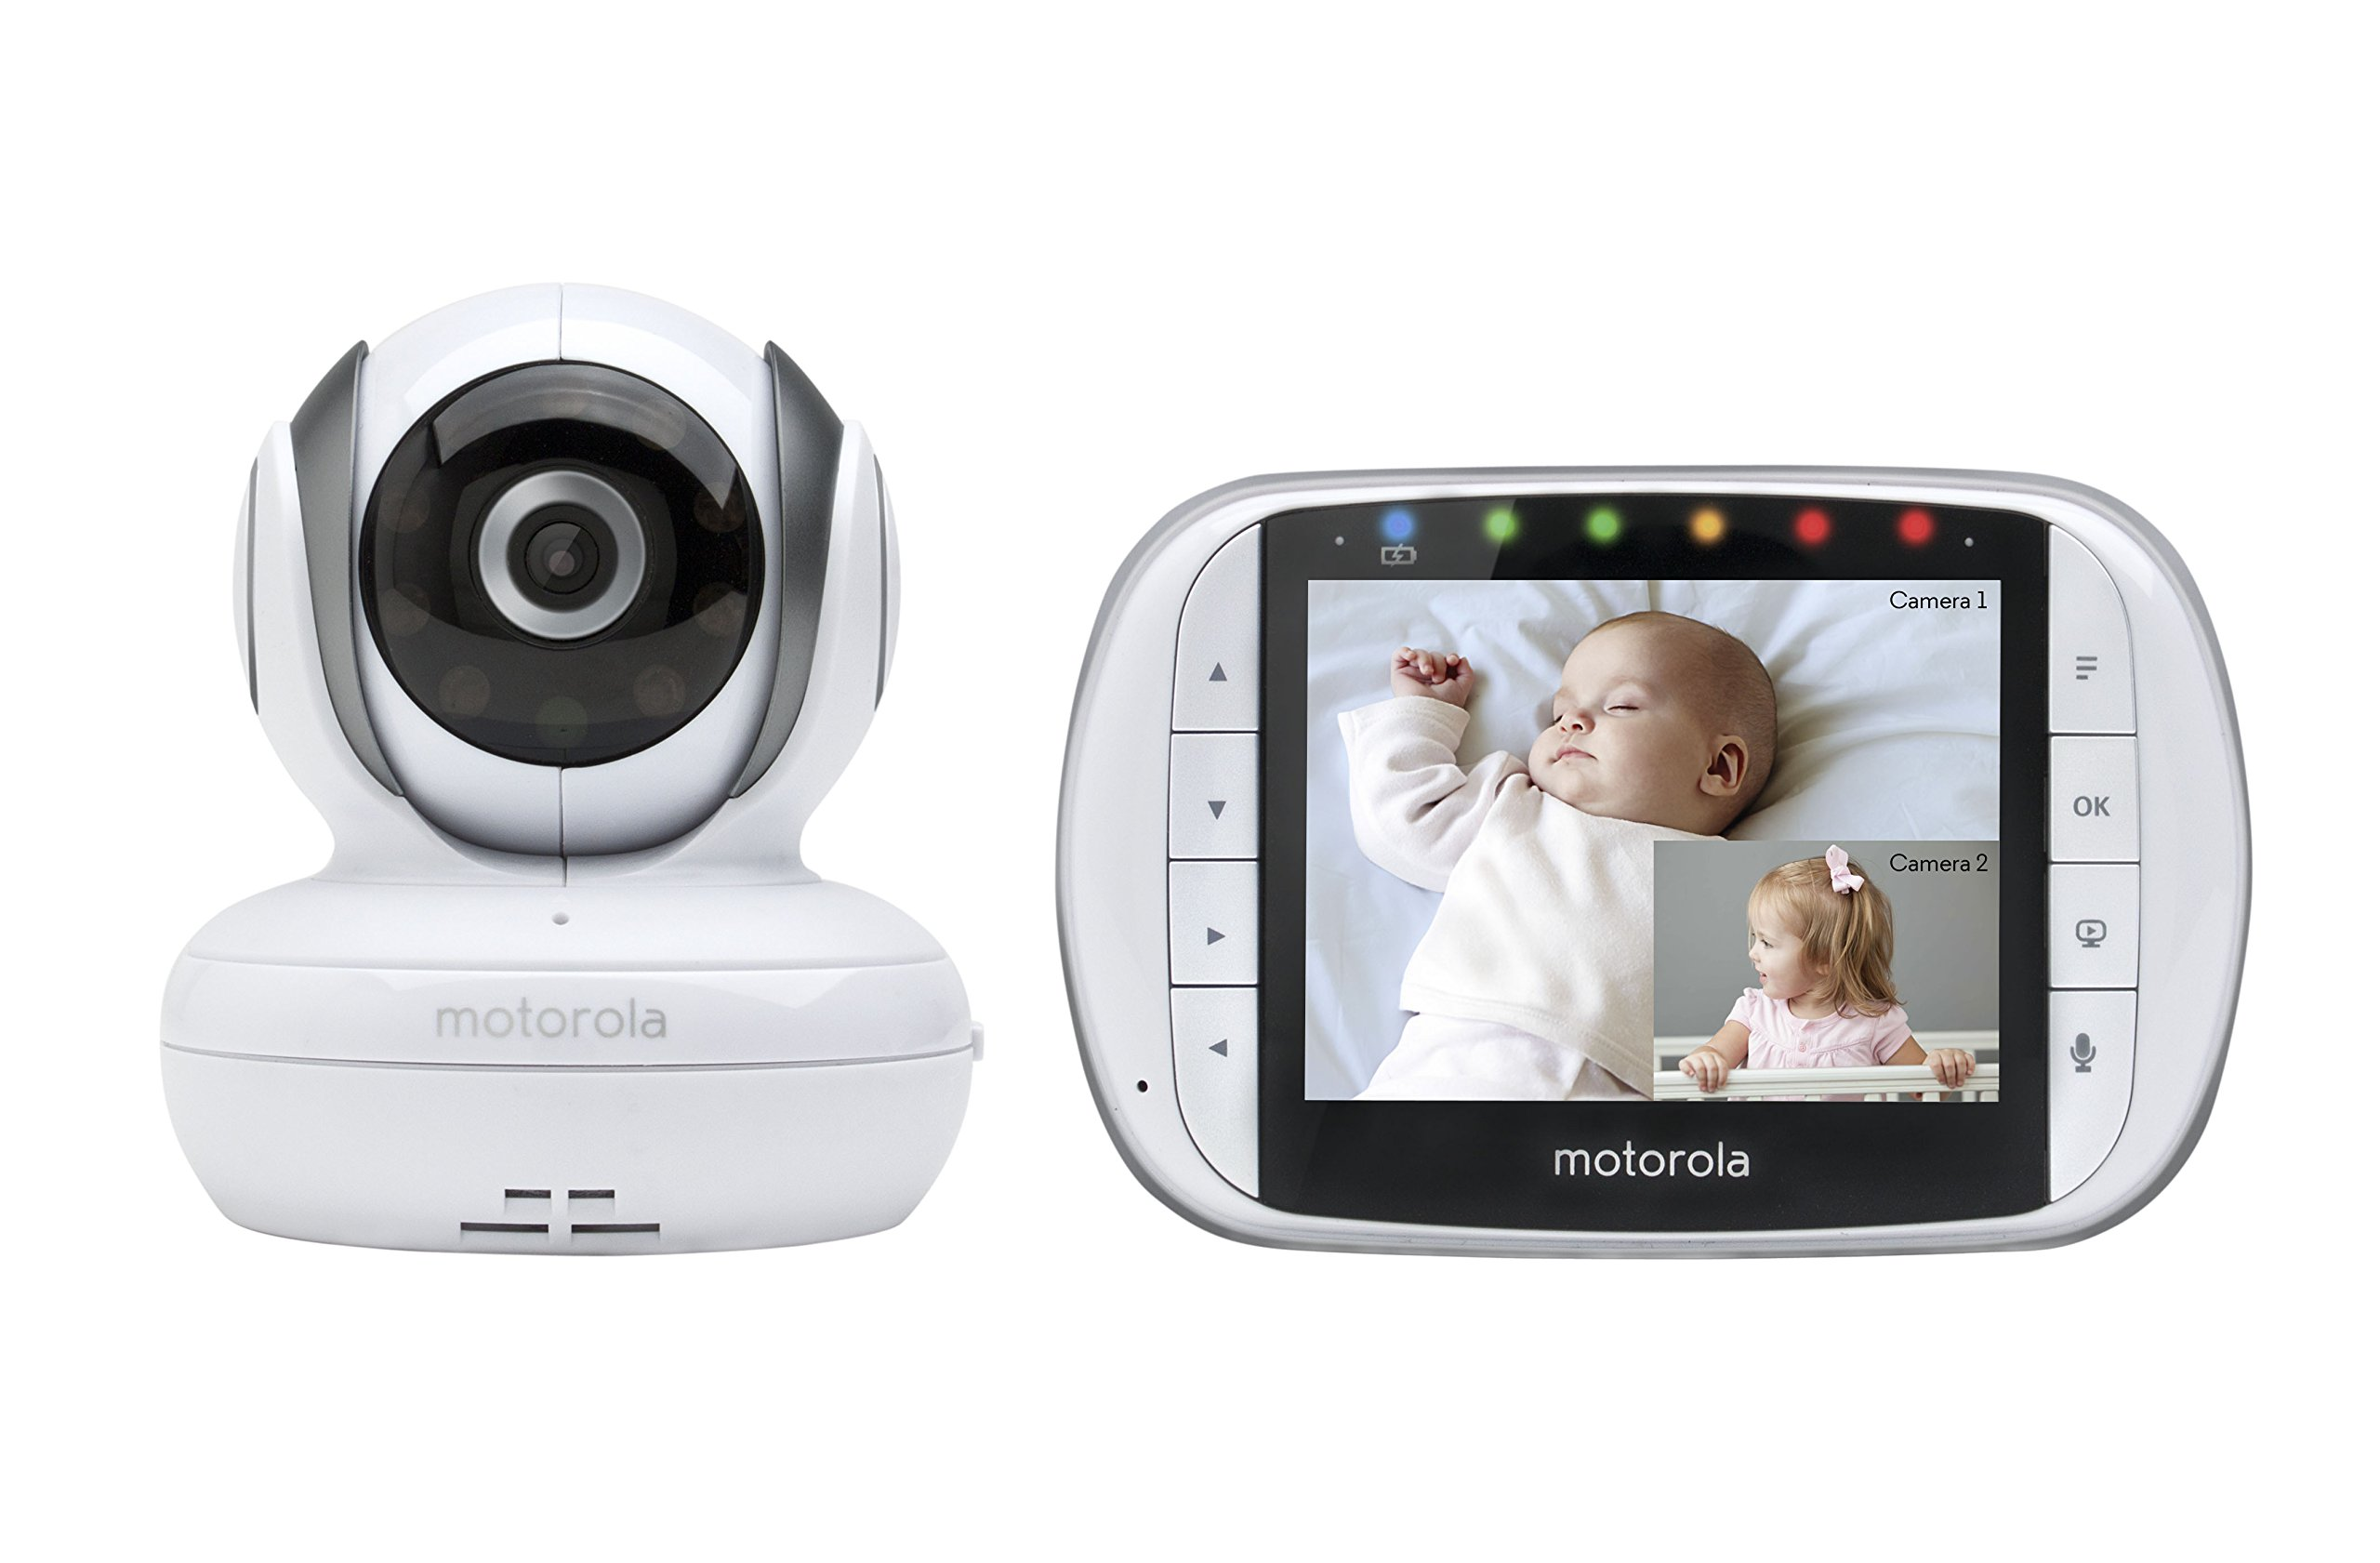 Motorola MBP36S Remote Wireless Video Baby Monitor with 3.5-Inch Color LCD Screen, Remote Camera Pan, Tilt, and Zoom by Motorola Baby (Image #1)